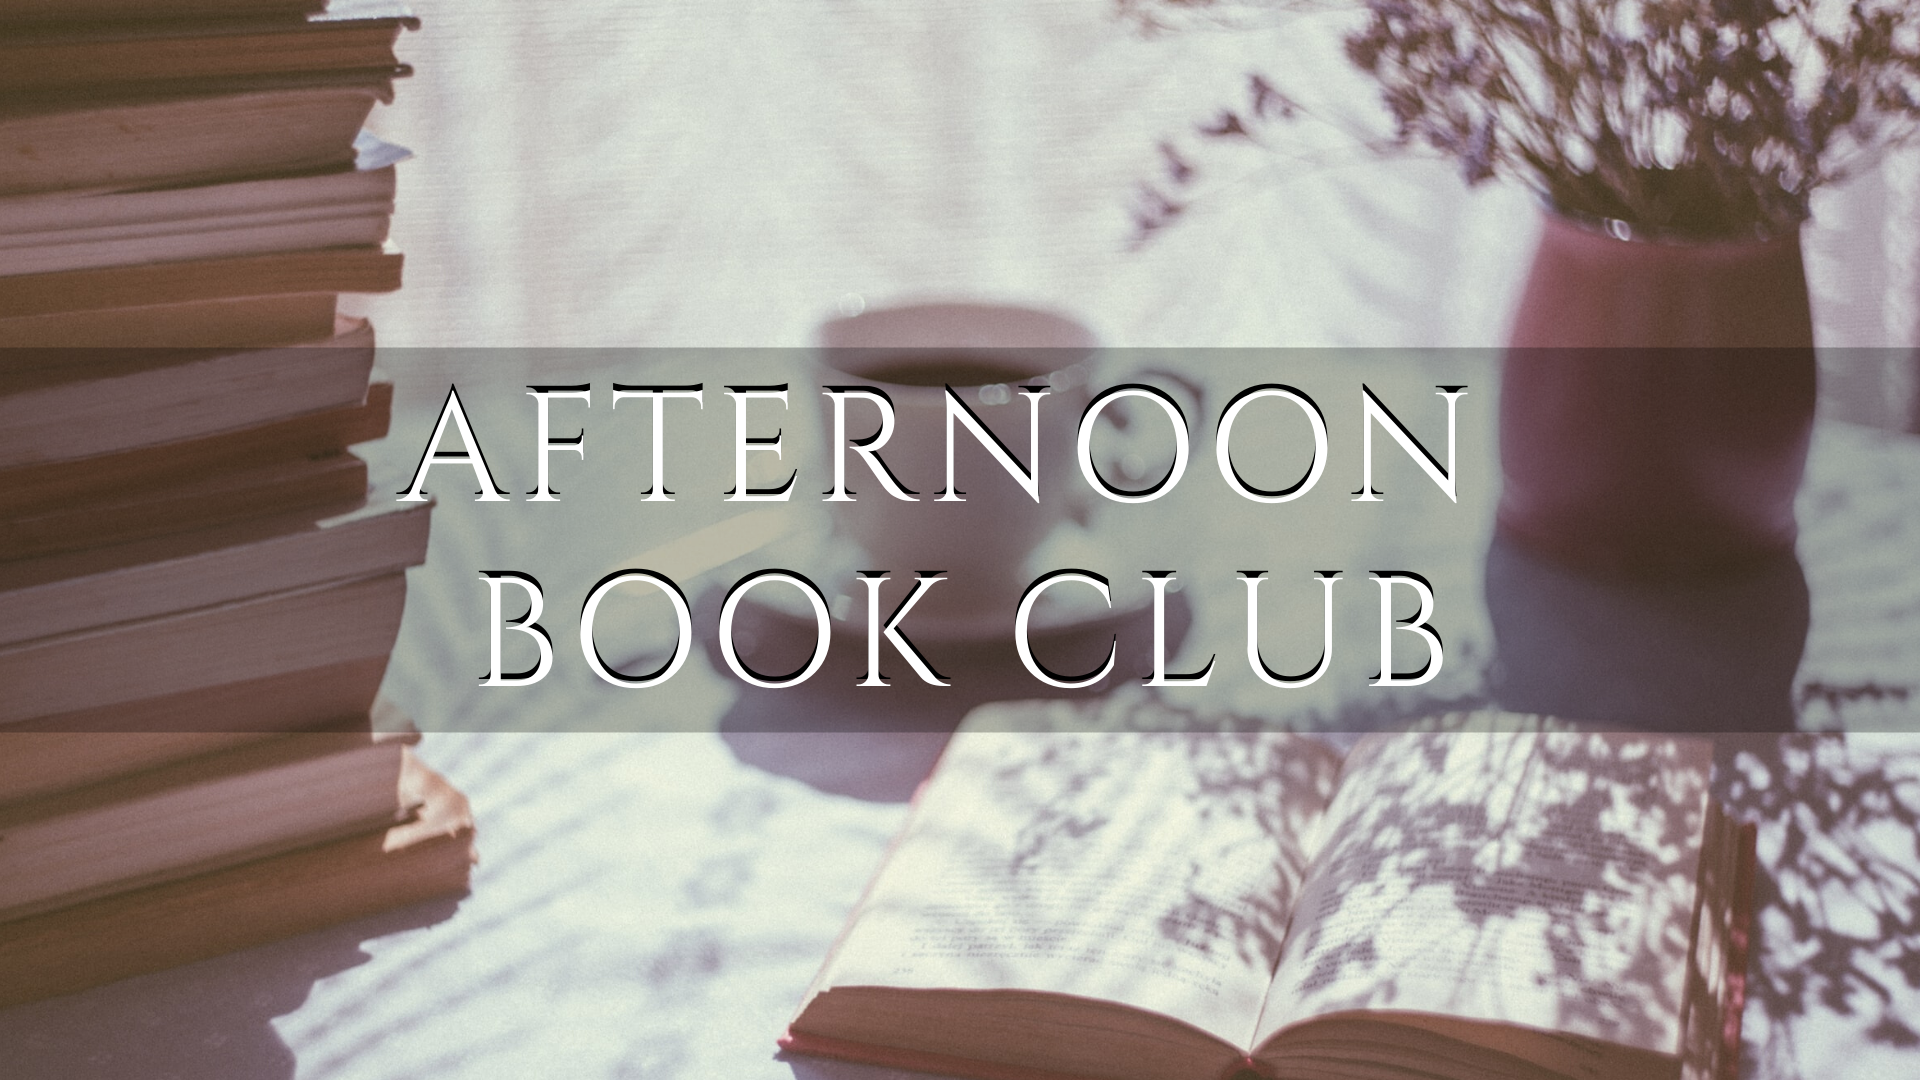 Virtual Afternoon Book Club